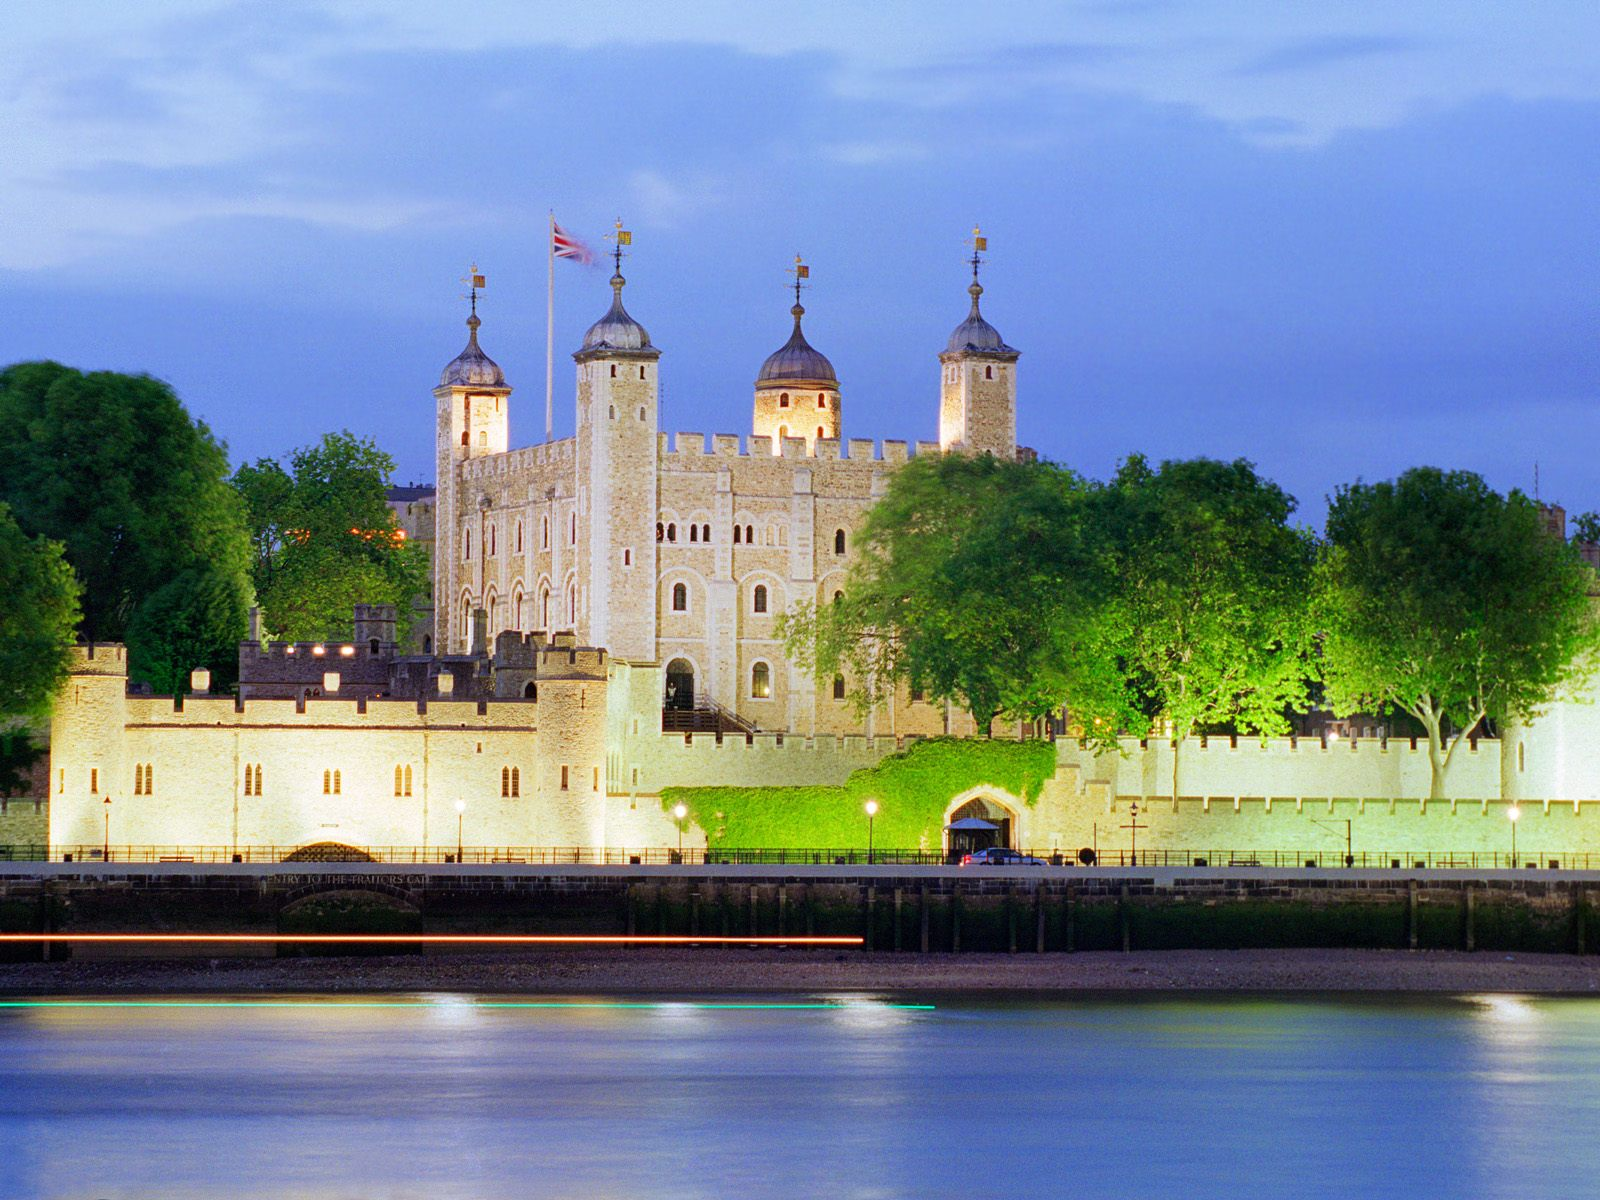 Kids n fun wallpaper tower of london england for Wallpaper home england